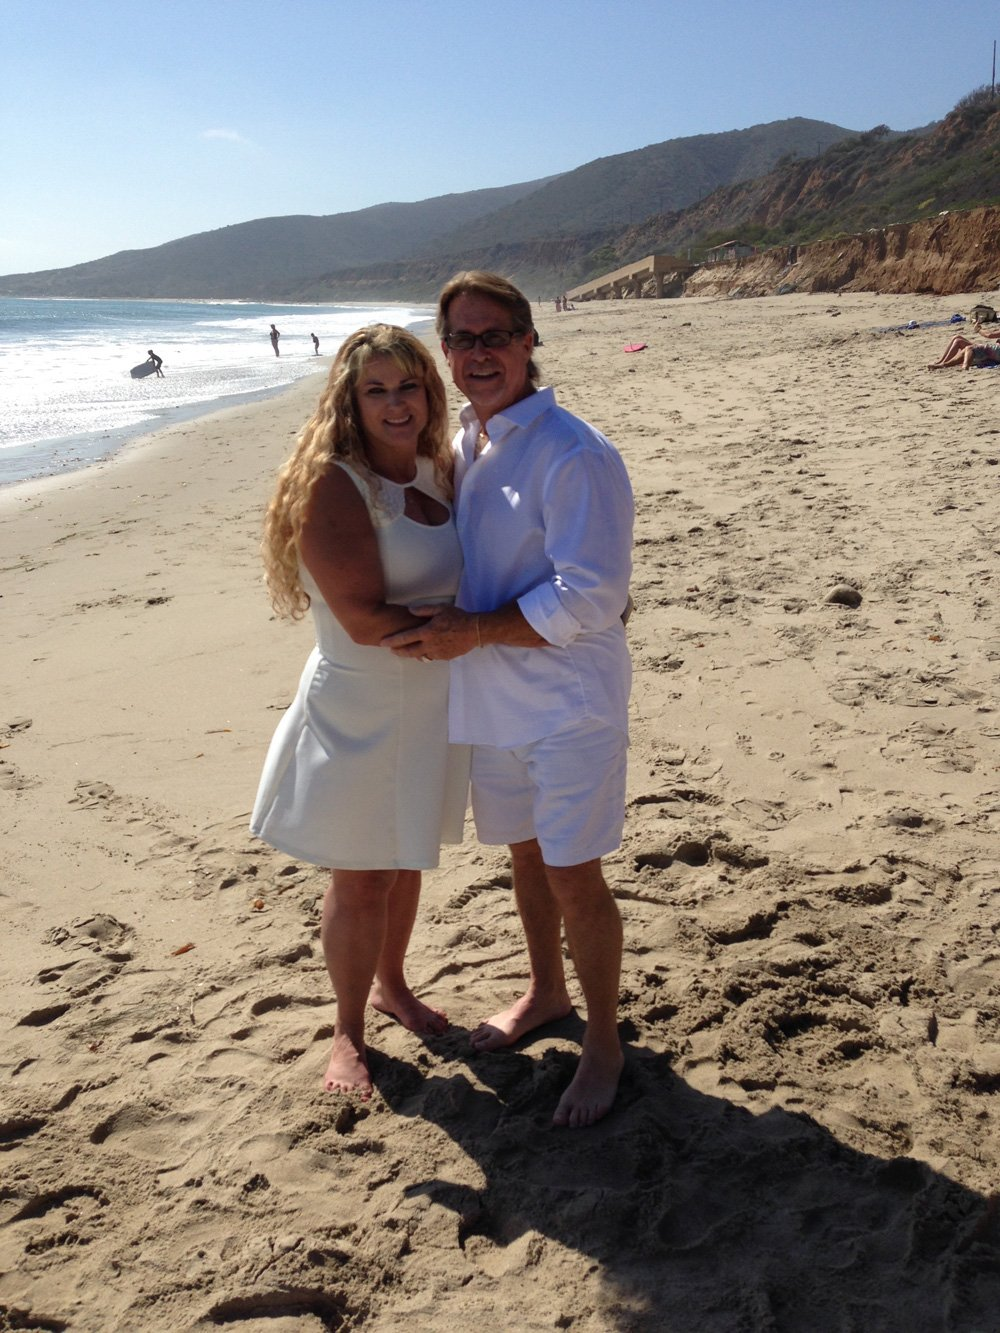 Rick and Rhonda, Nicholas Canyon Beach, Malibu